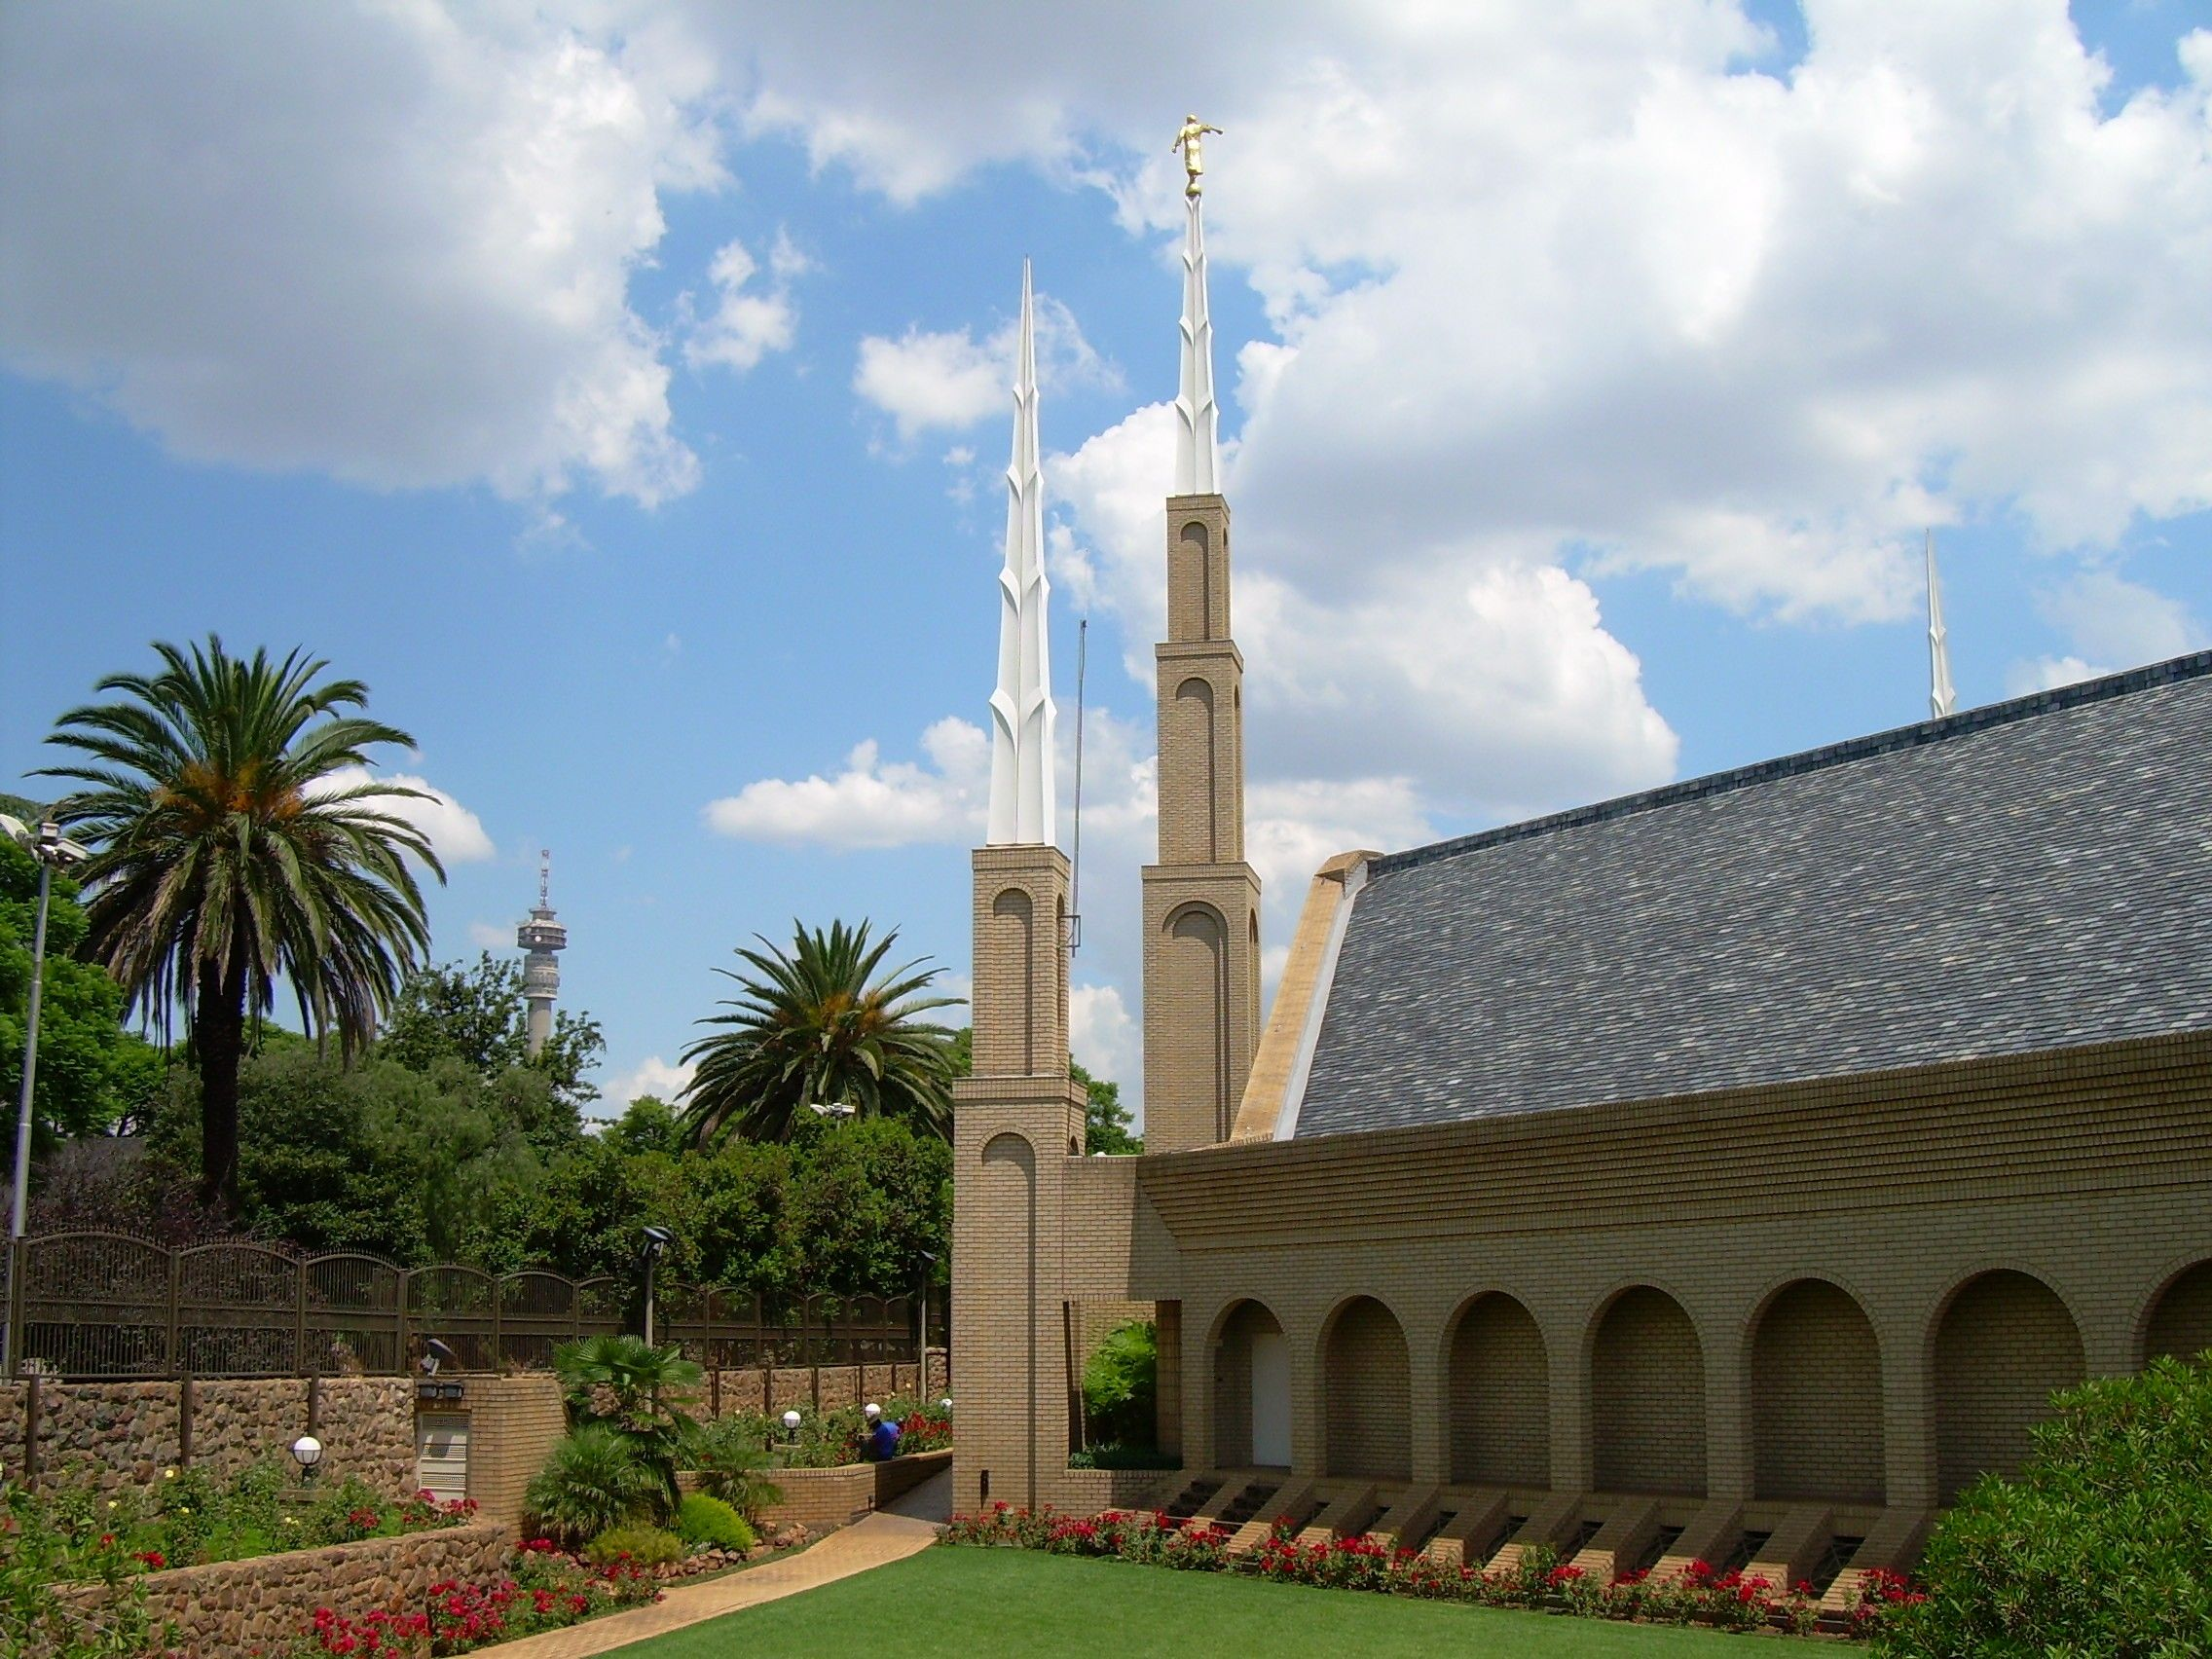 The Johannesburg South Africa Temple spires, including side view and scenery.